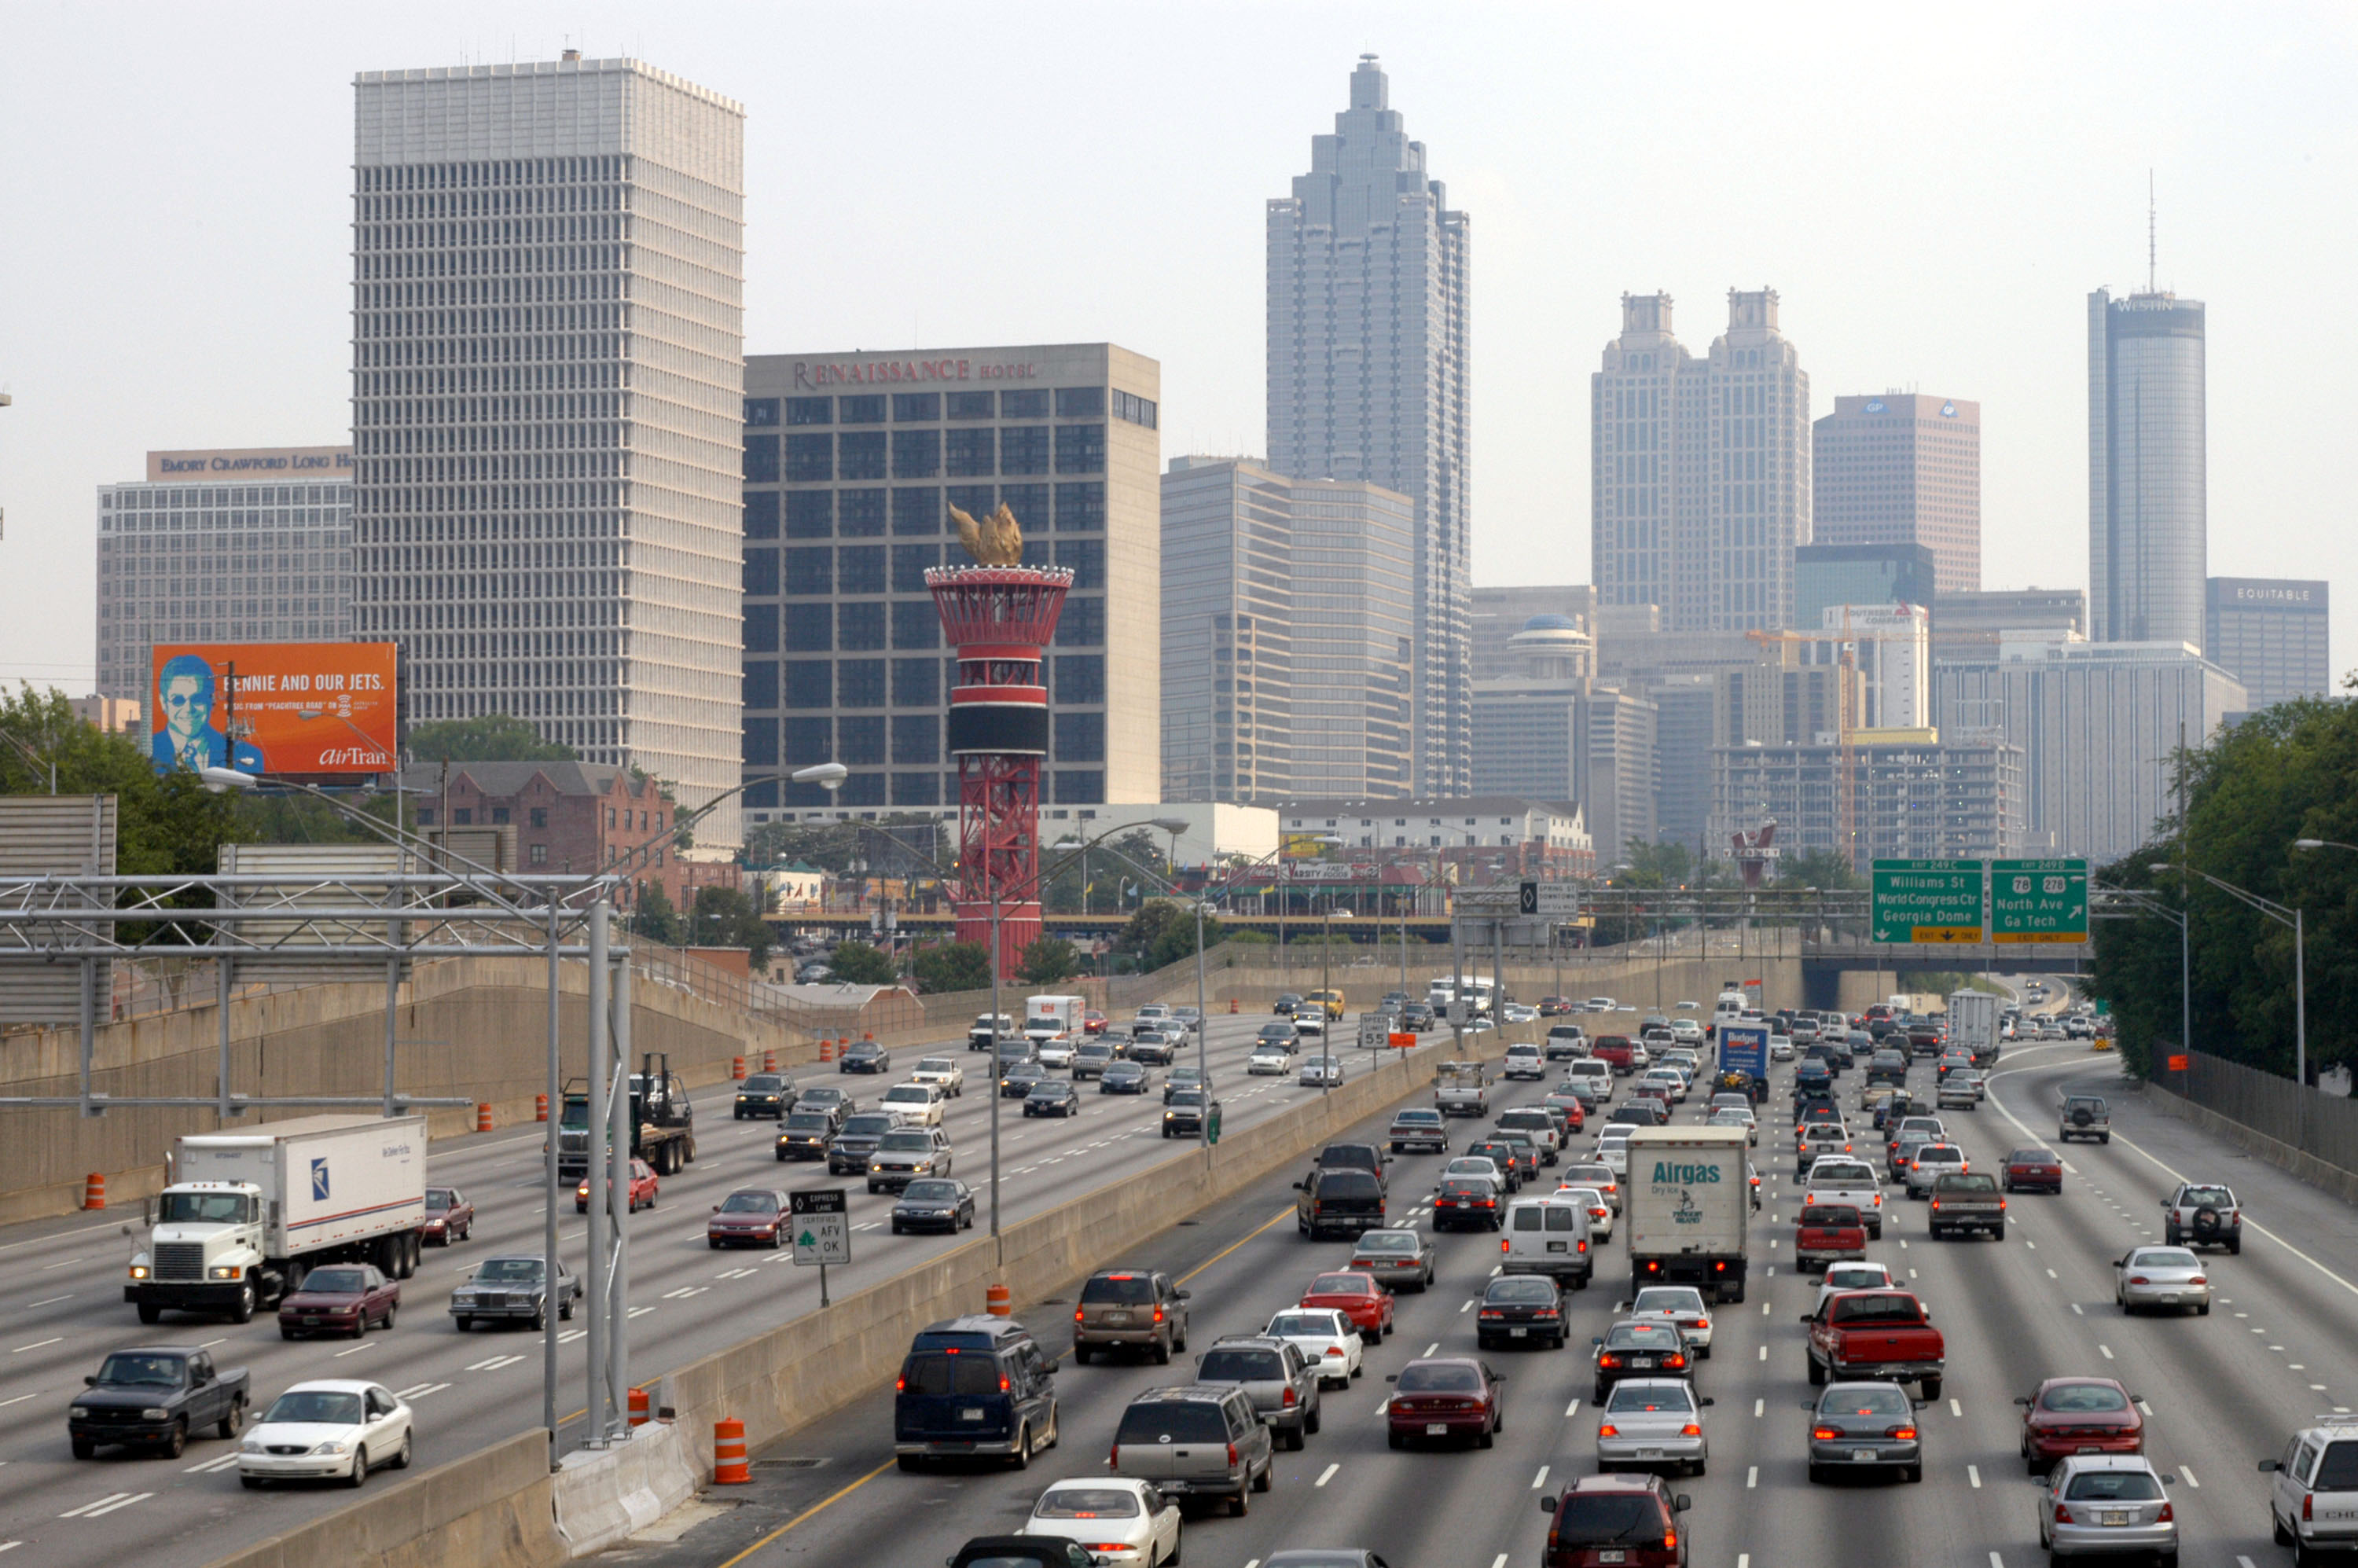 Planners unveil $173B vision to 'keep metro ATL moving' through 2050, seek public input